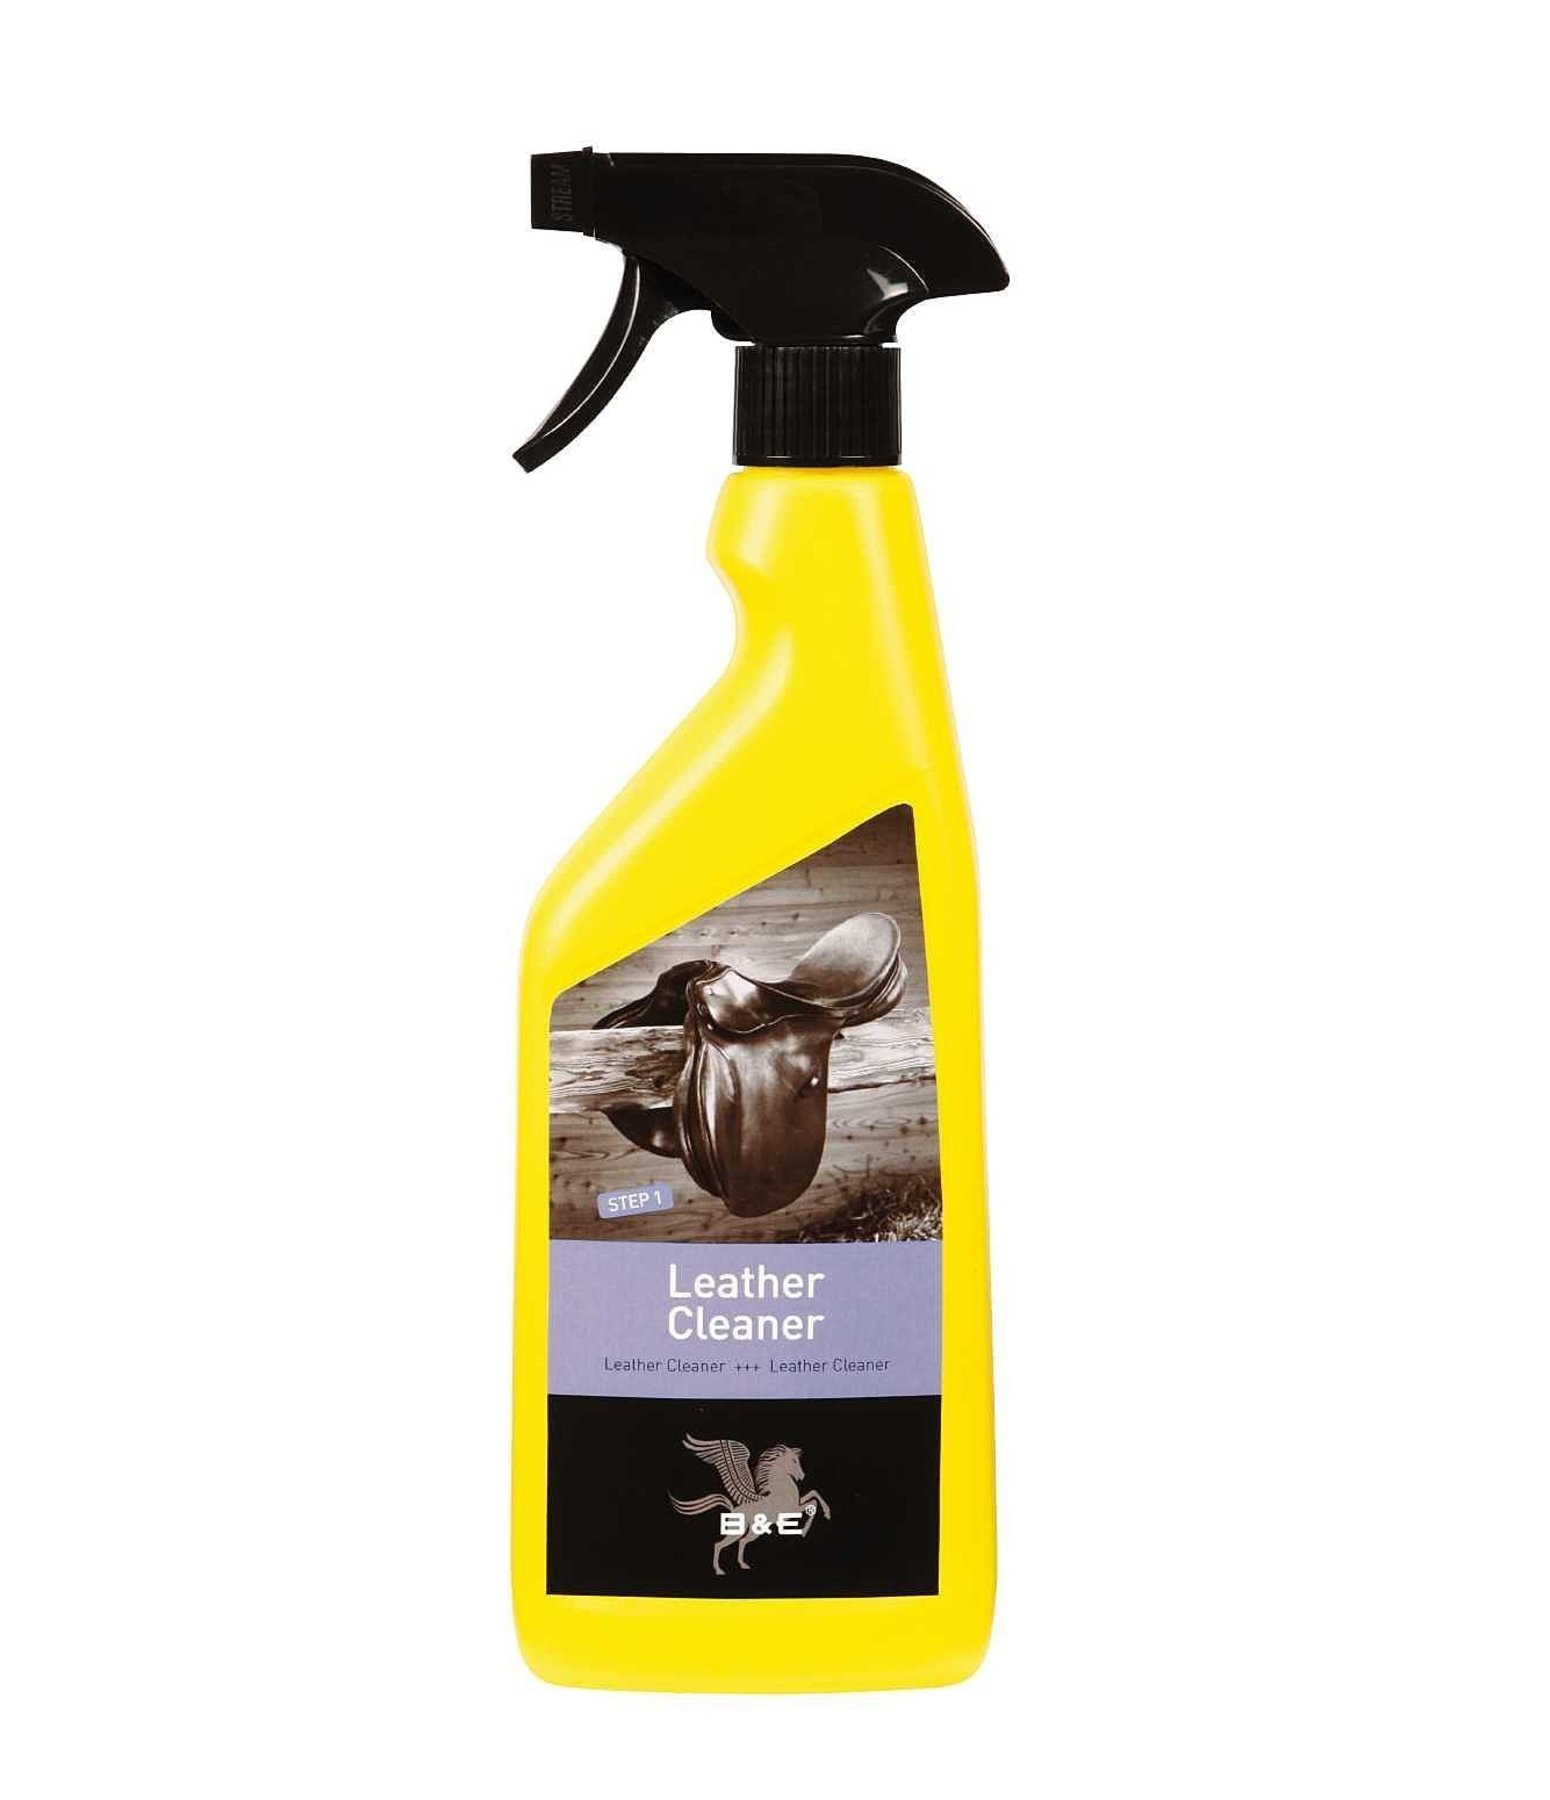 Leather Cleaner 1